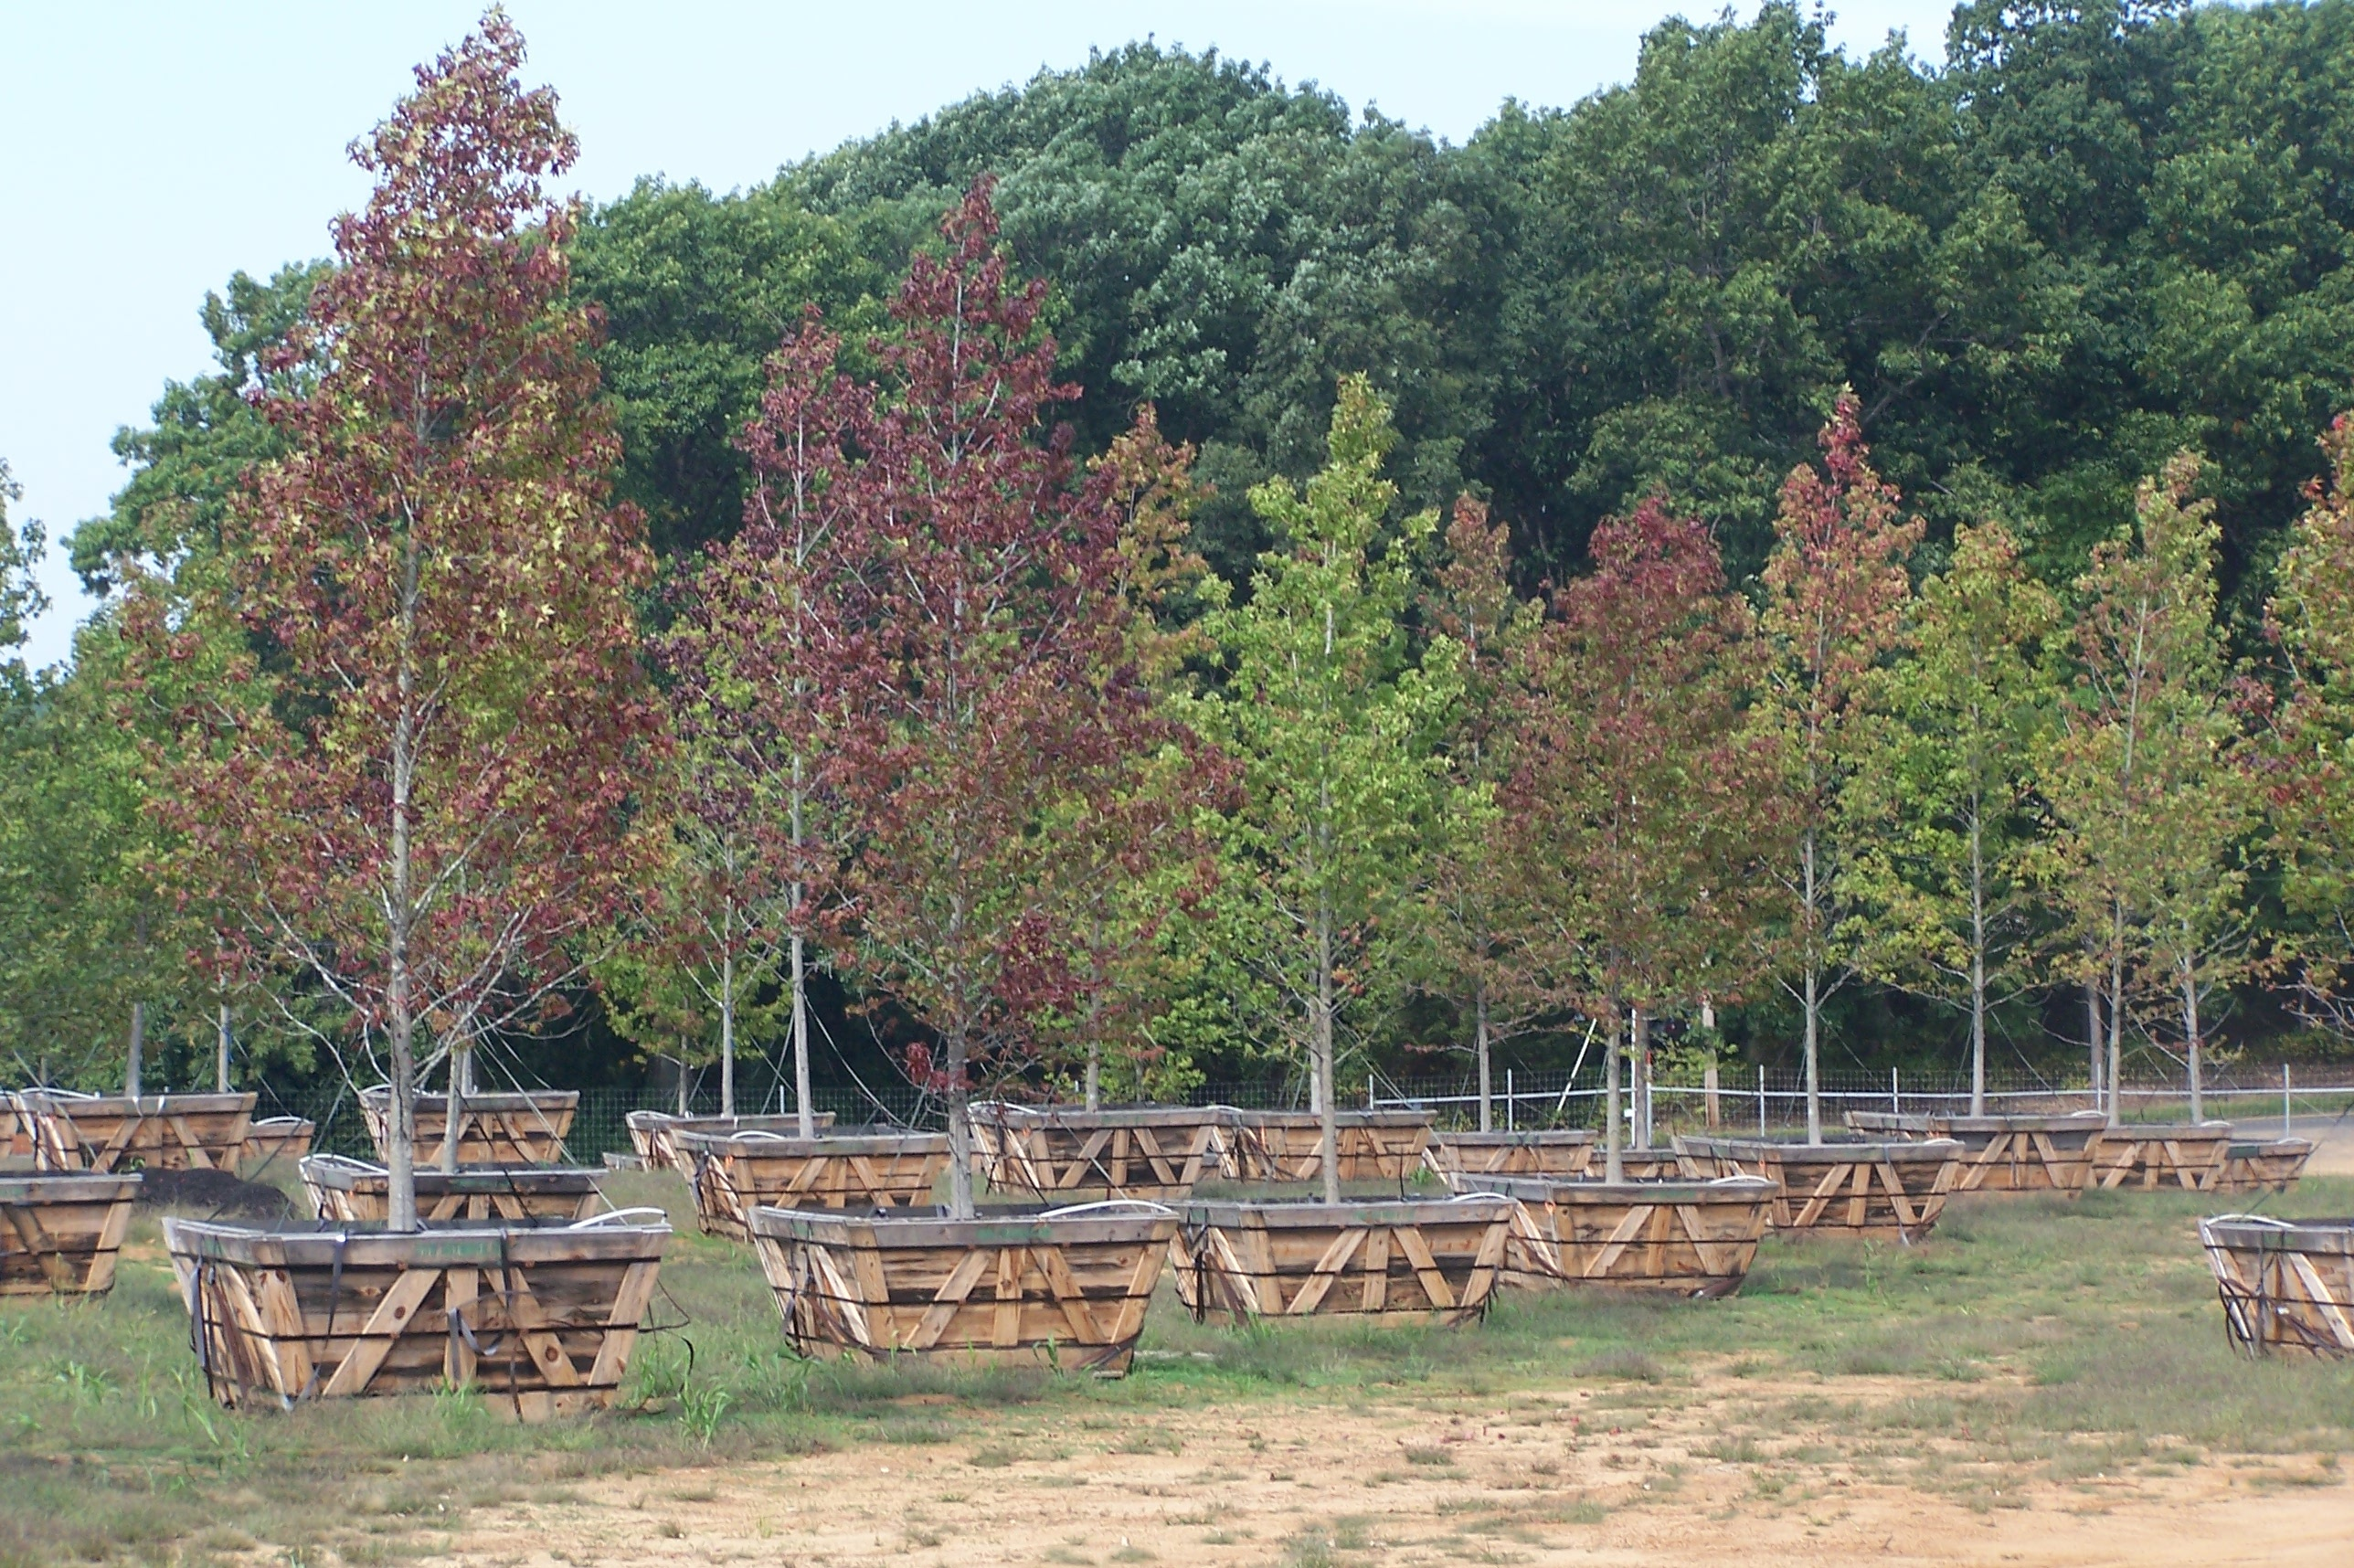 White swamp oaks are cared for Bartlett Tree Experts at a New Jersey nursery before being planted at the 9/11 memorial site. Trees are selected for specific characteristics, like good fall color.